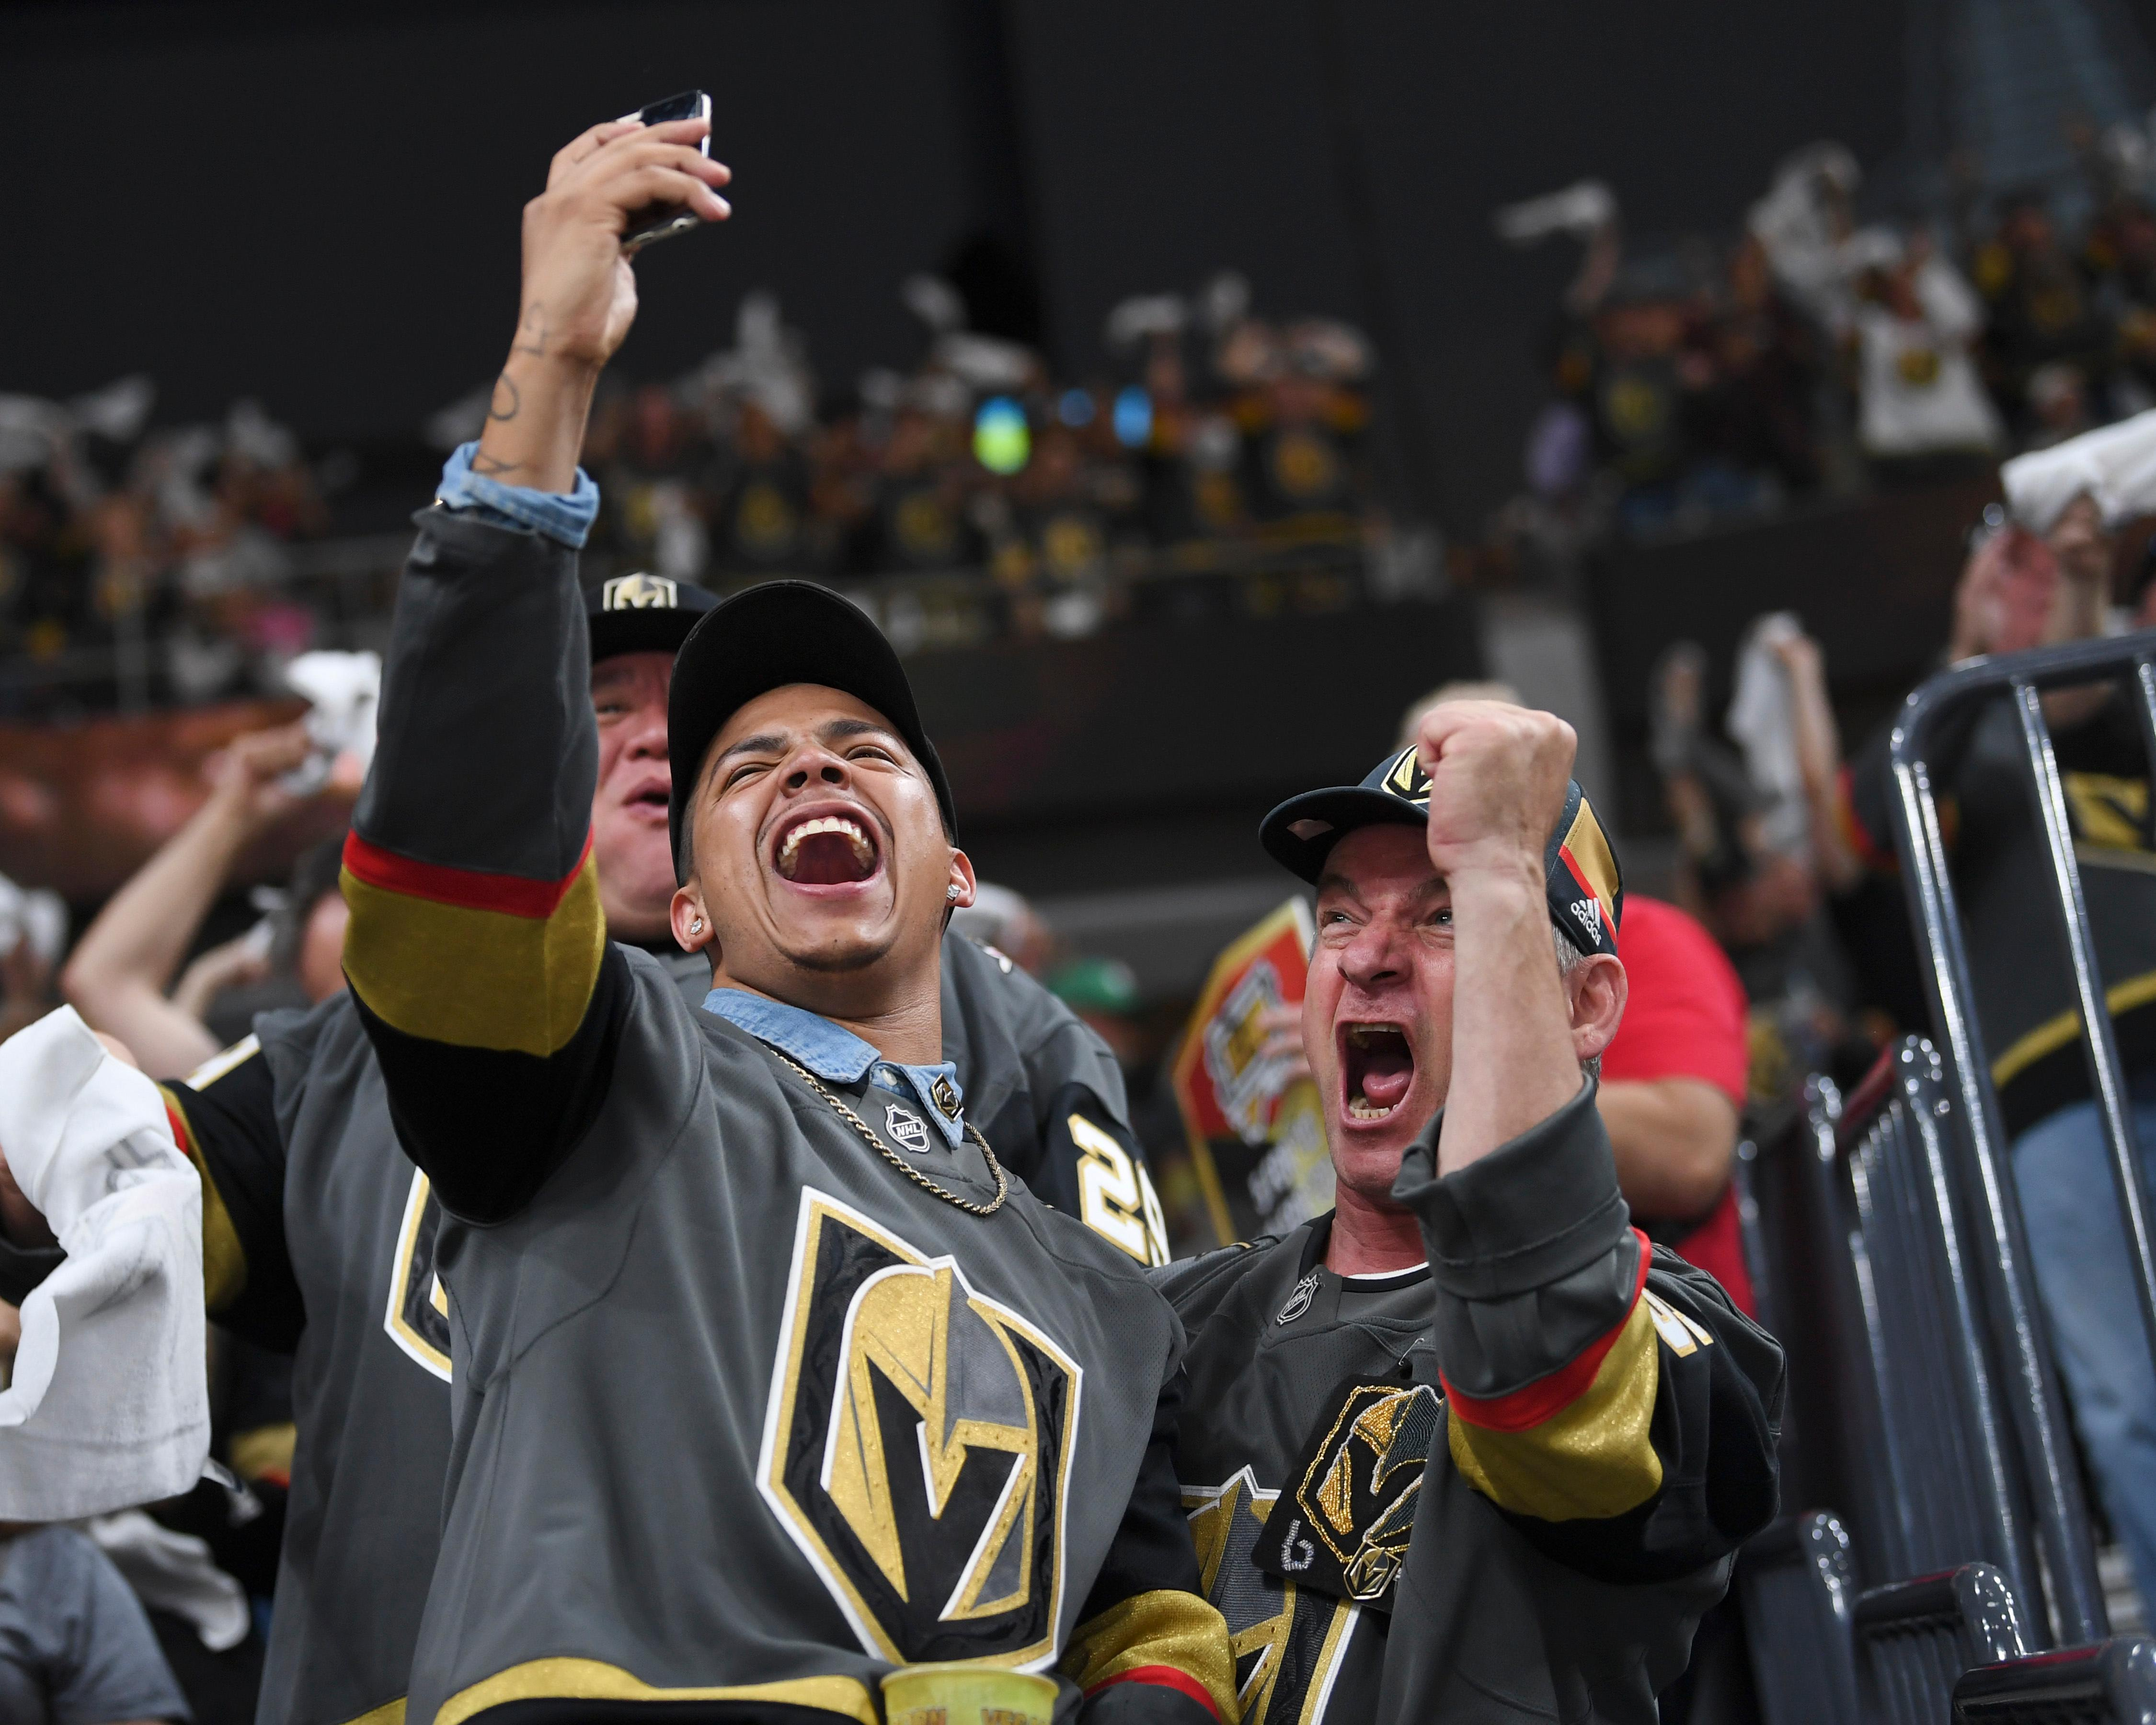 Vegas Golden Knights fans cheer after they scored a goal against the Winnipeg Jets during Game 4 of their NHL hockey Western Conference Final game Friday, May 18, 2018, at T-Mobile Arena. CREDIT: Sam Morris/Las Vegas News Bureau